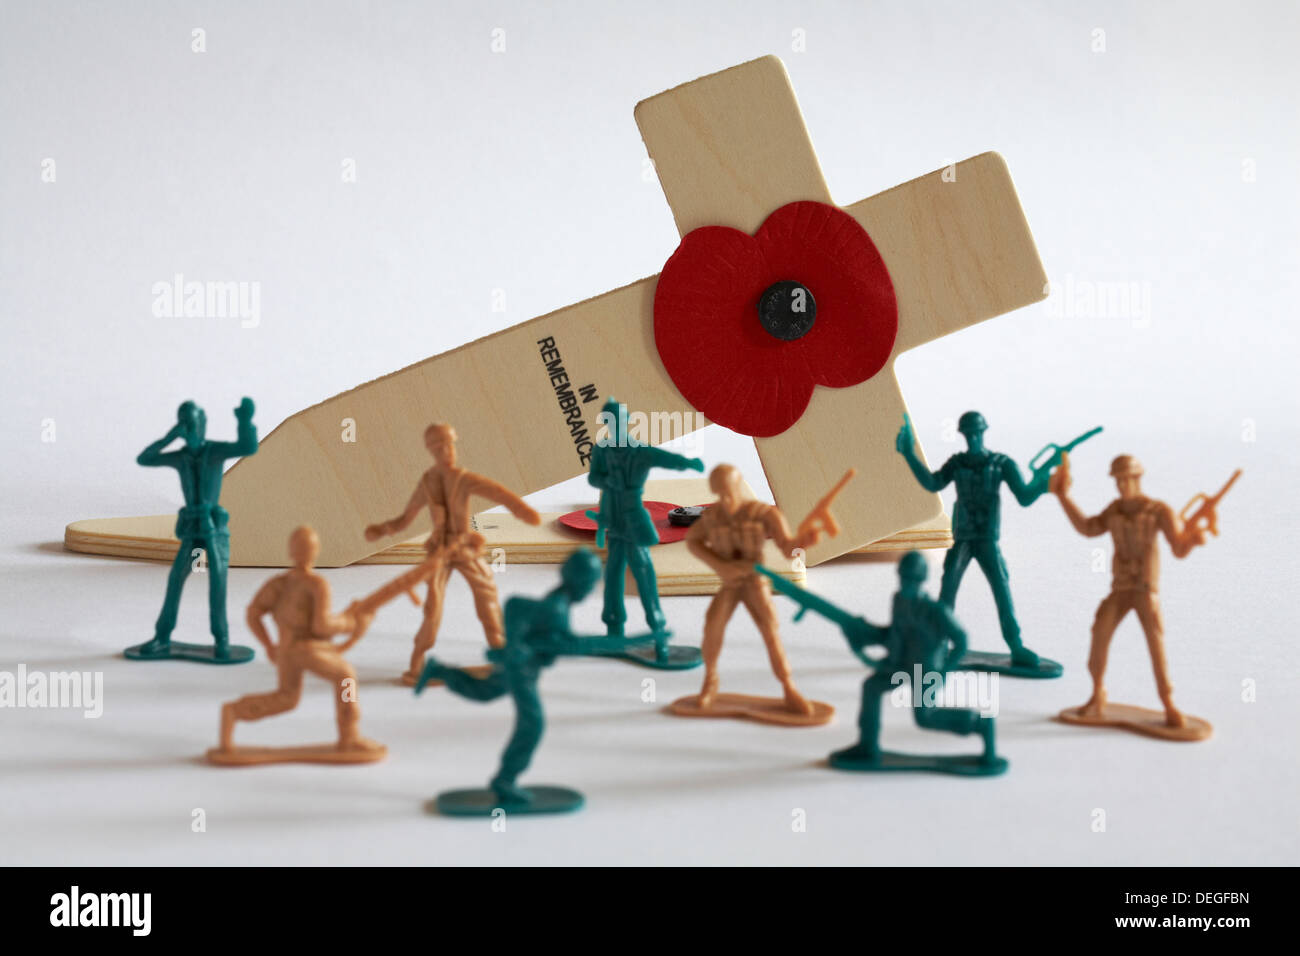 Toy Soldiers Battle Stock Photos & Toy Soldiers Battle Stock Images